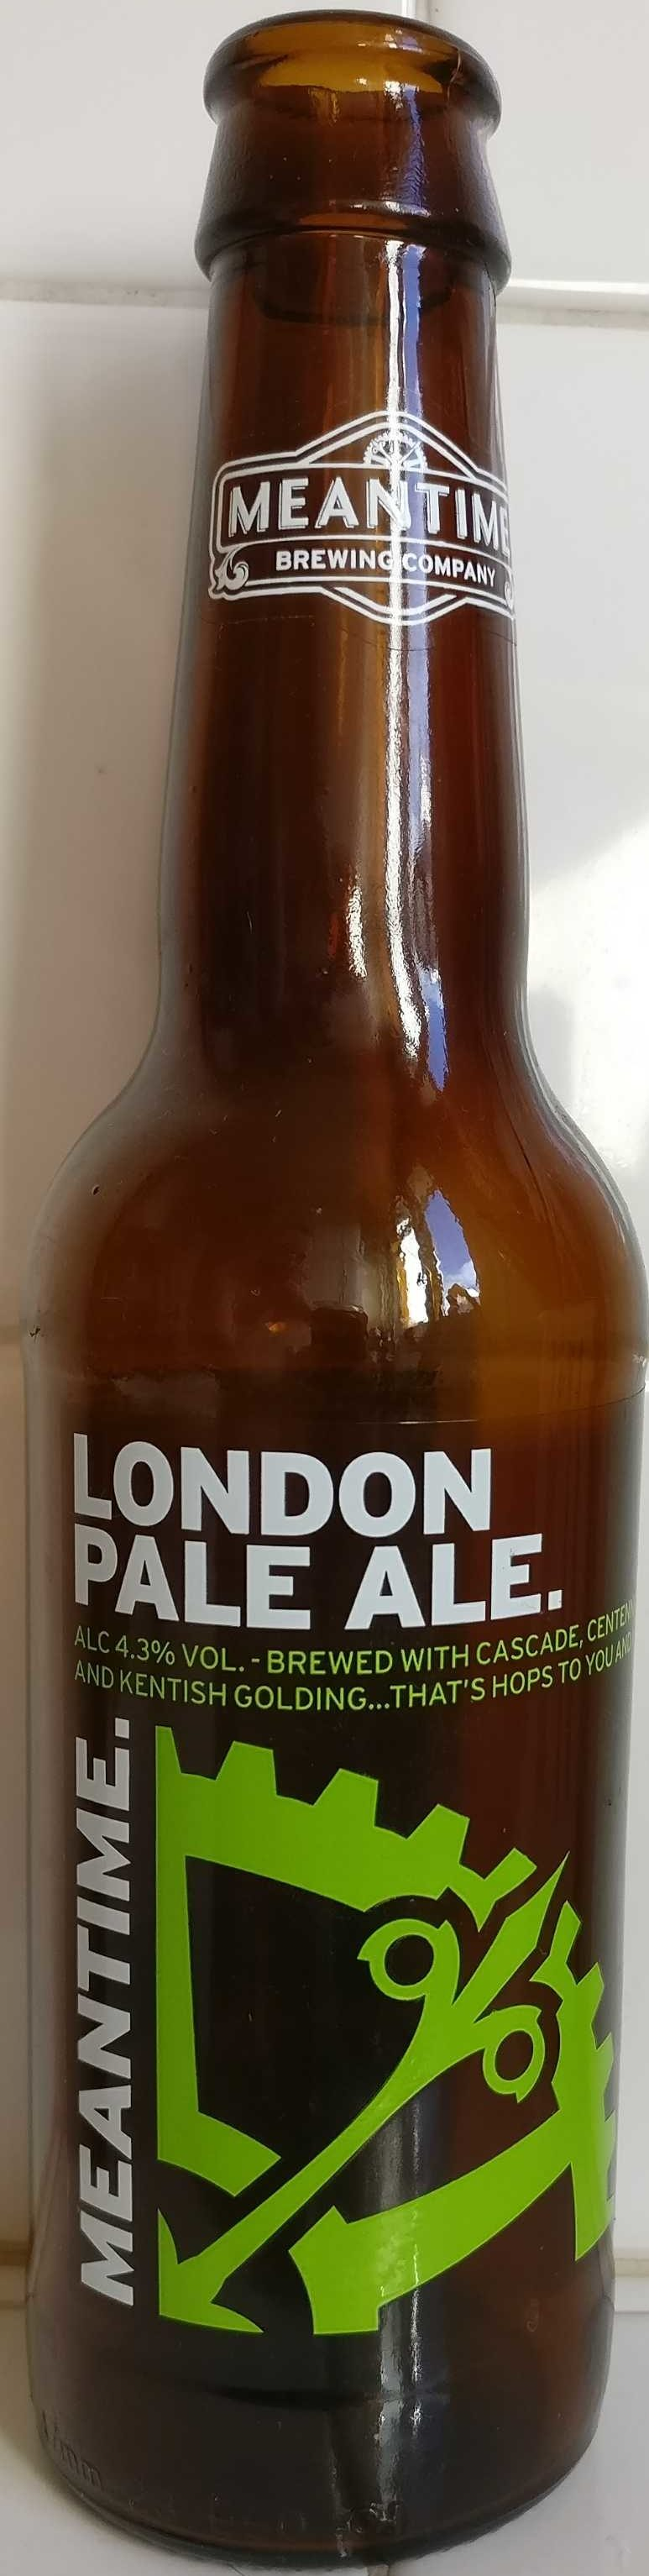 London Pale Ale - Product